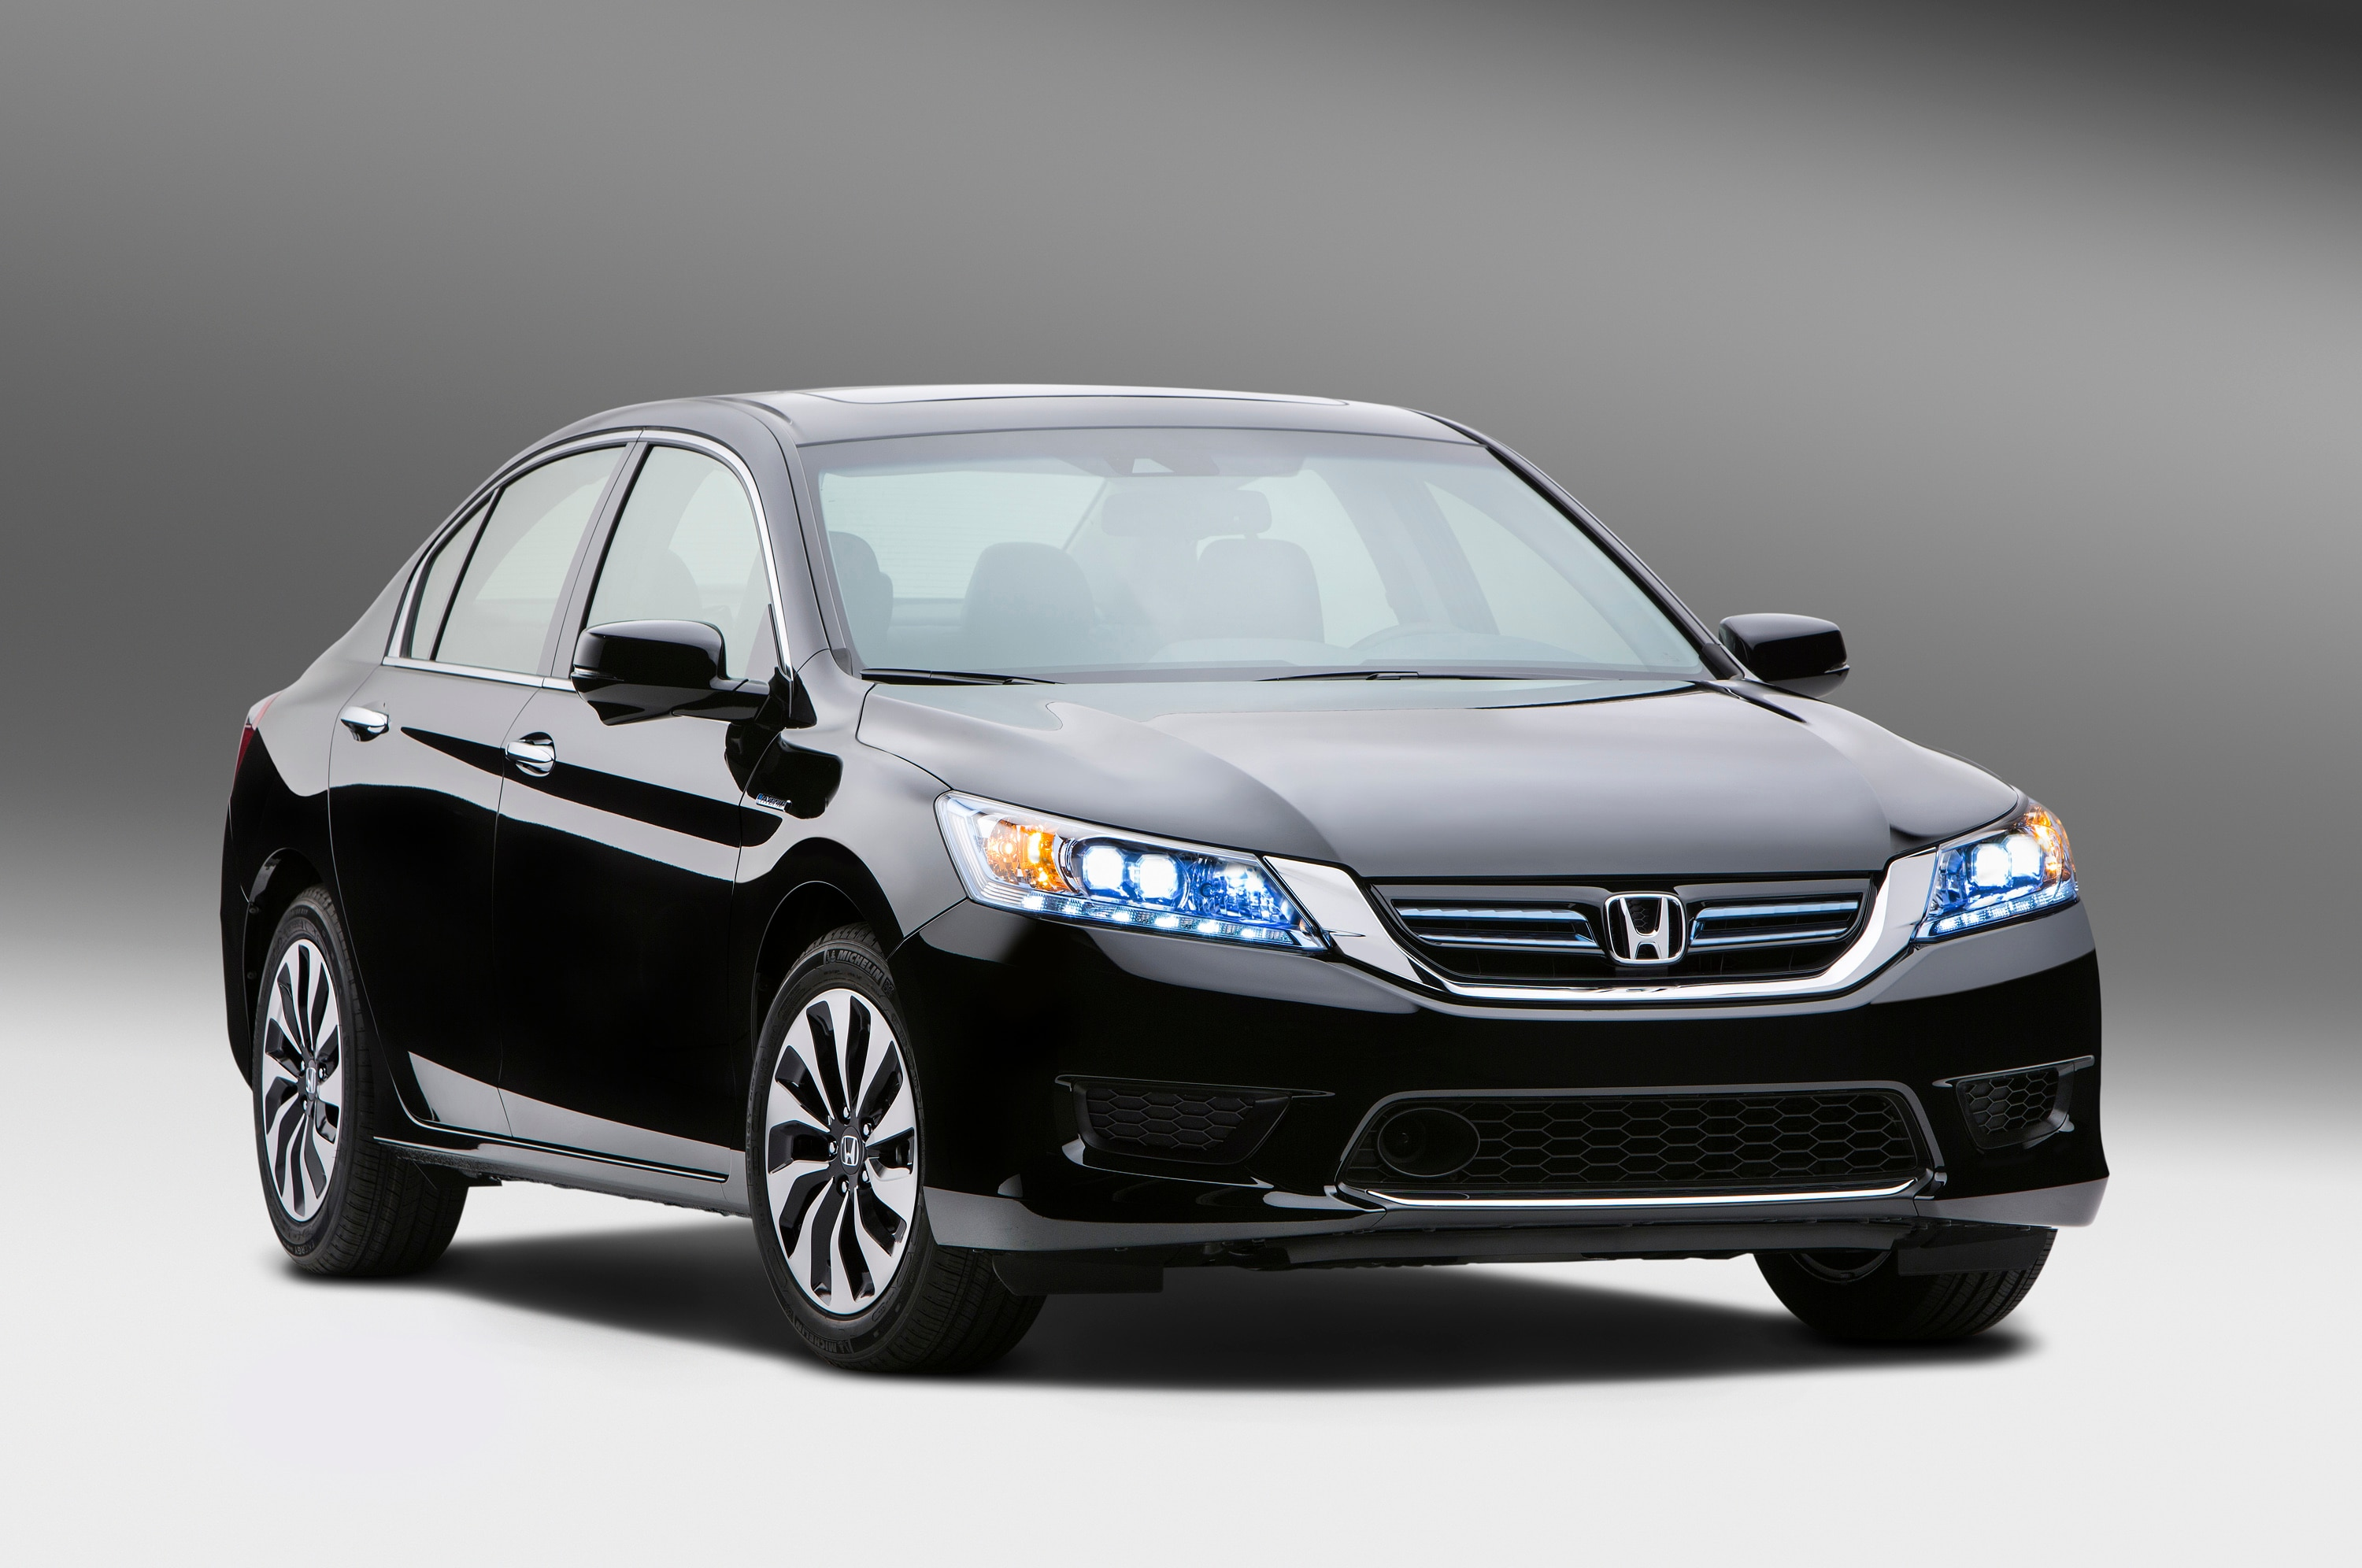 2014 Honda Accord Hybrid Front Three Quarters11